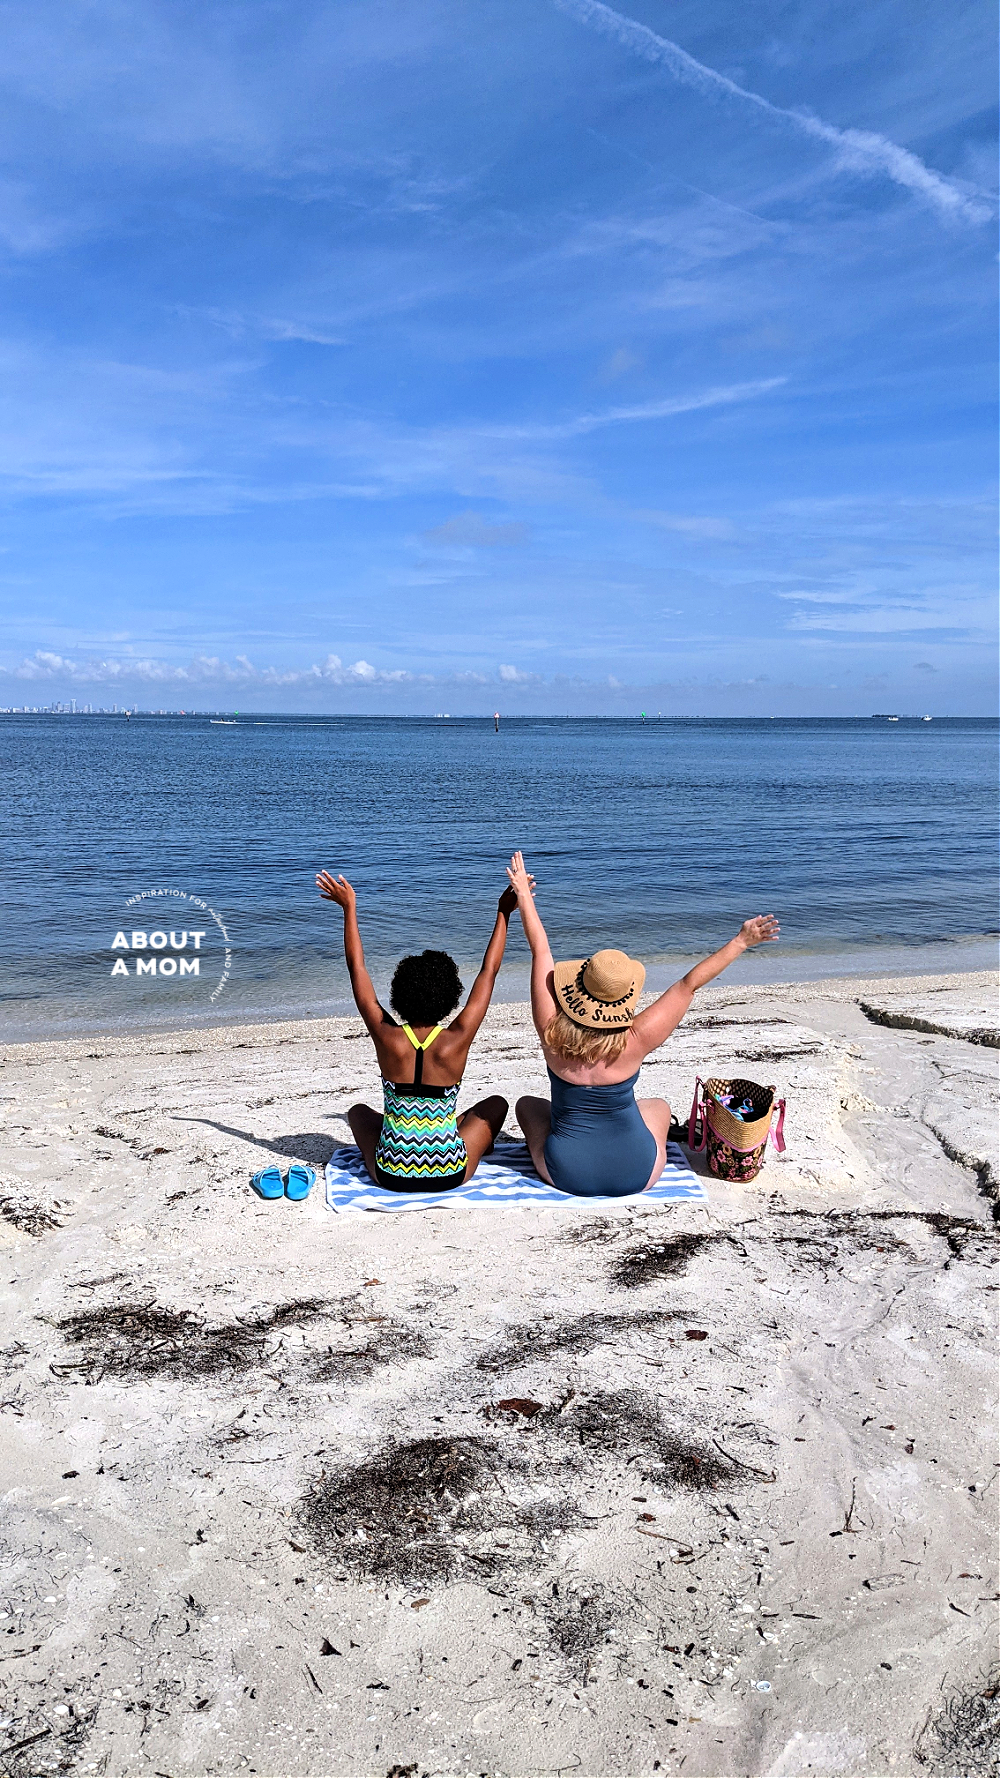 Now is the perfect time to start saving for college. Use the 2021 Florida 529 Savings Plan promo code MOM529 to get $50 added to your account for FREE.